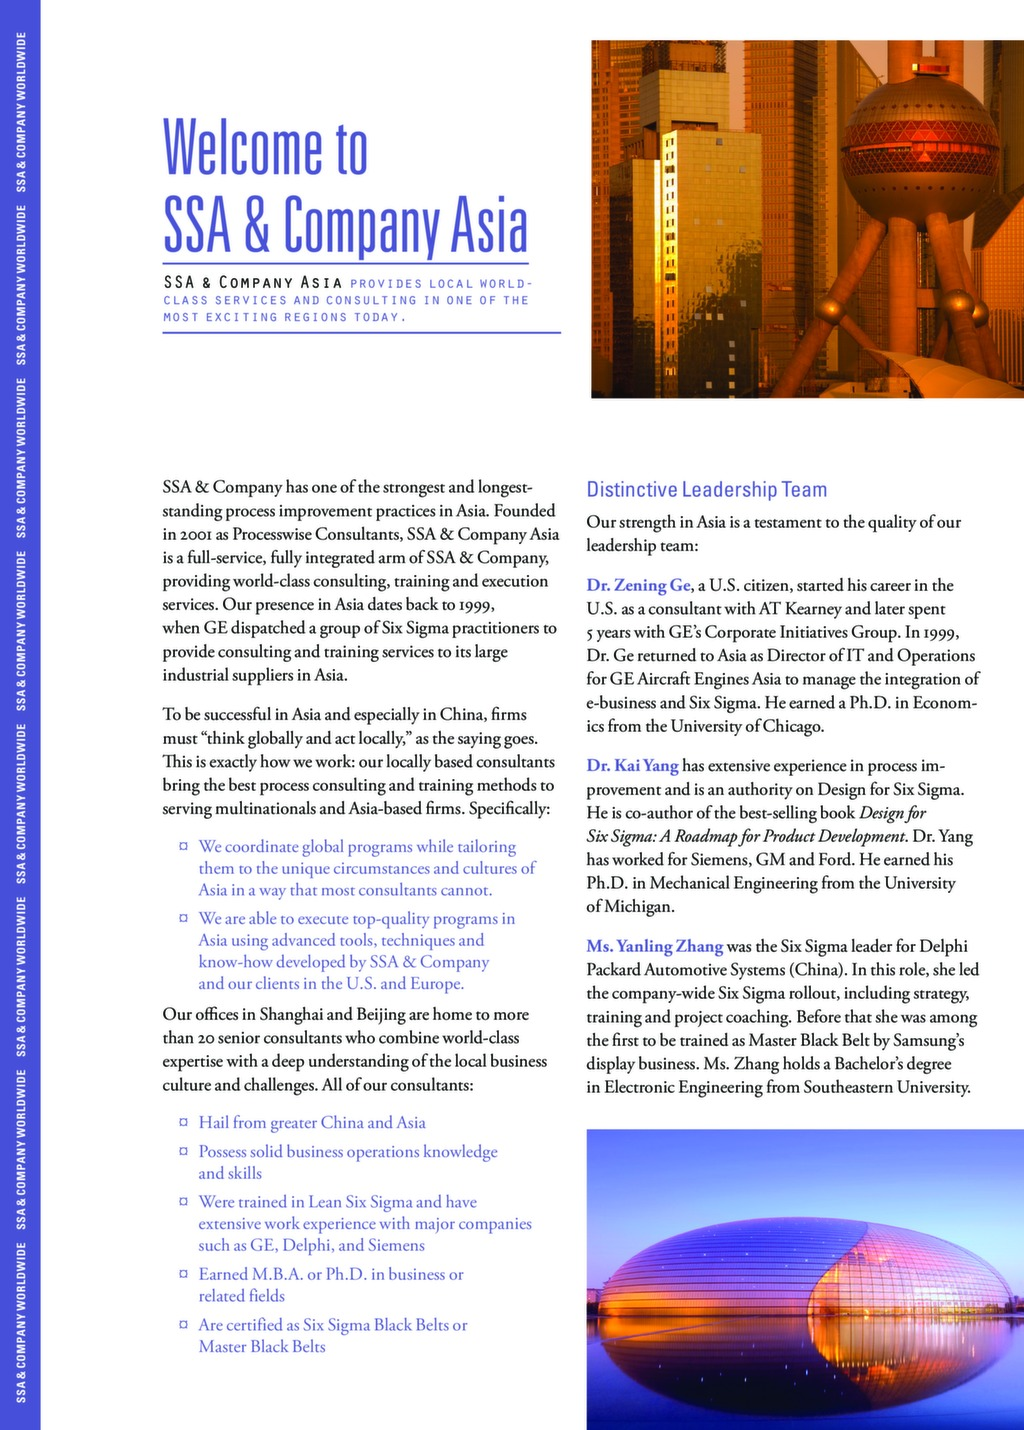 Welcome to SSA & Company Asia — ISSSP for Lean Six Sigma